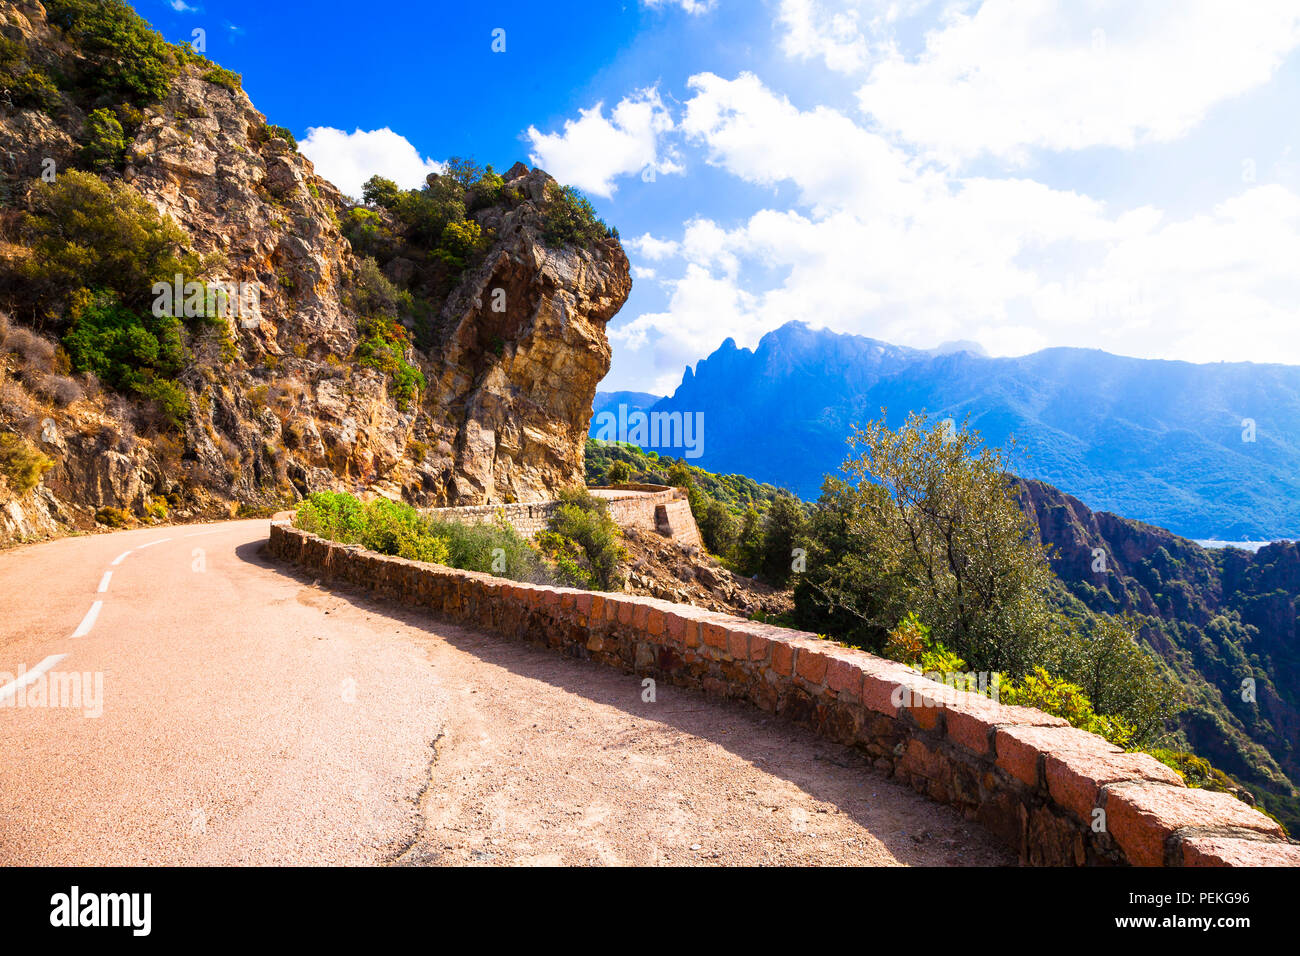 Impressive mountains in Corsica,panoramic view,France - Stock Image